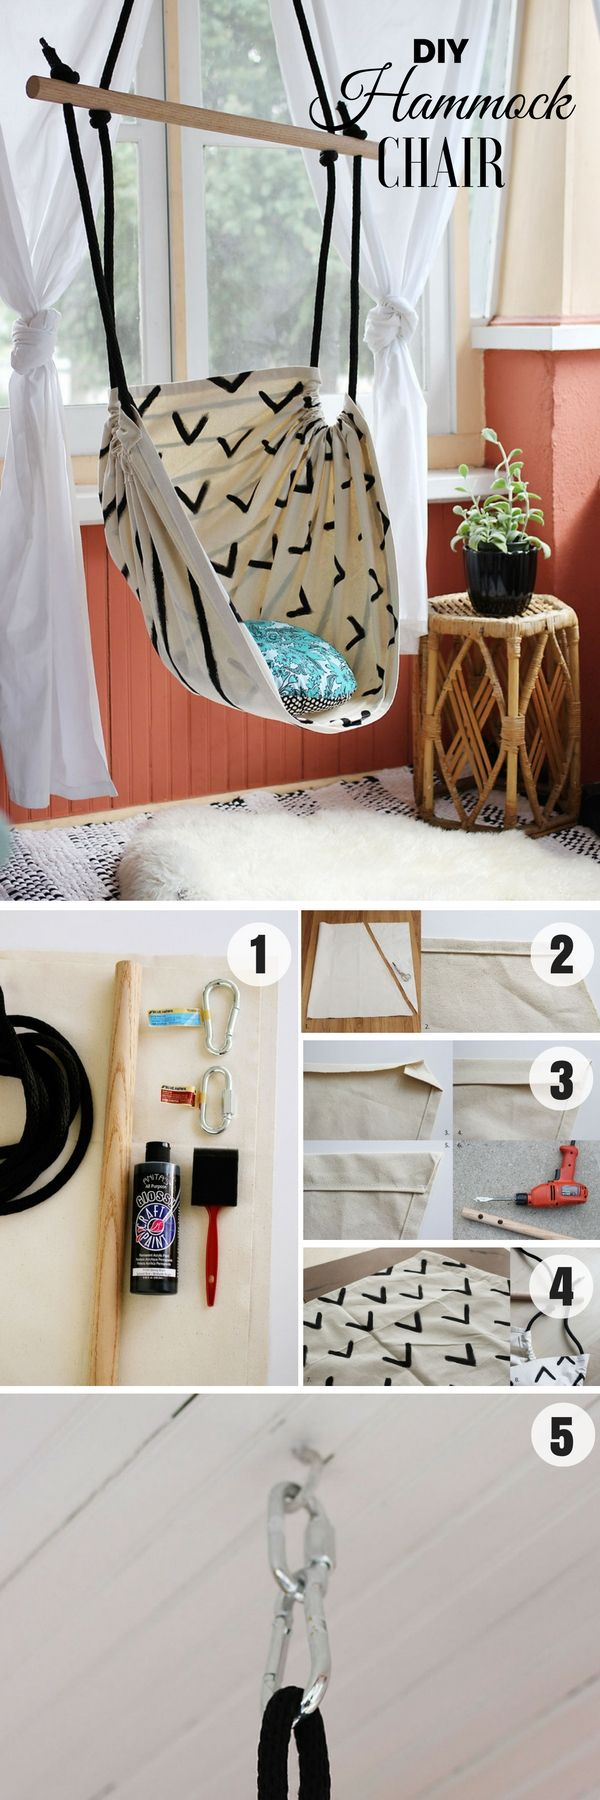 16 Beautiful DIY Bedroom Decor Ideas That Will Inspire You. 25  unique Easy diy room decor ideas on Pinterest   Desk